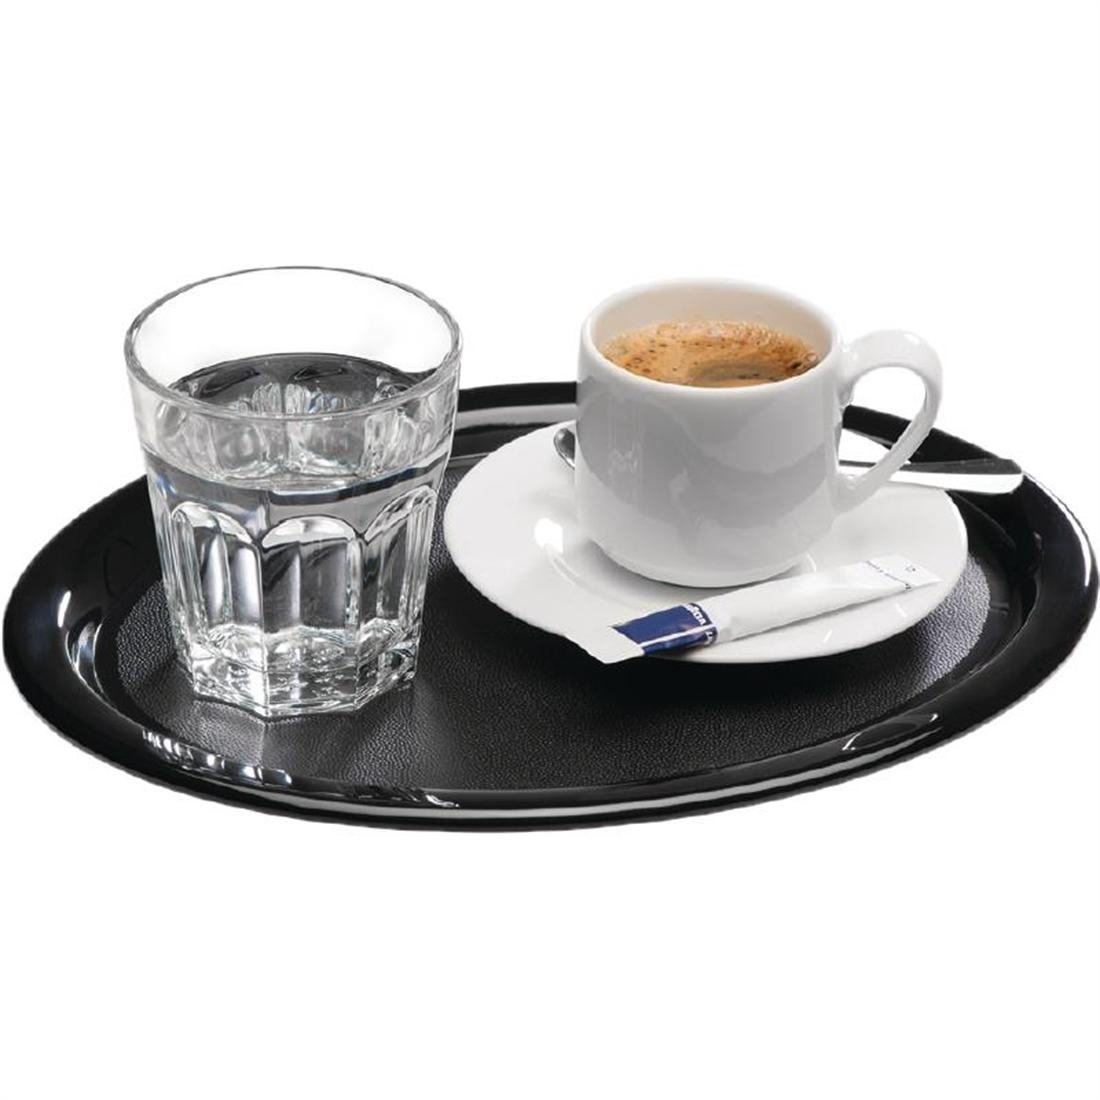 GL623 - APS Melamine Service Tray Black 285mm - Each - GL623